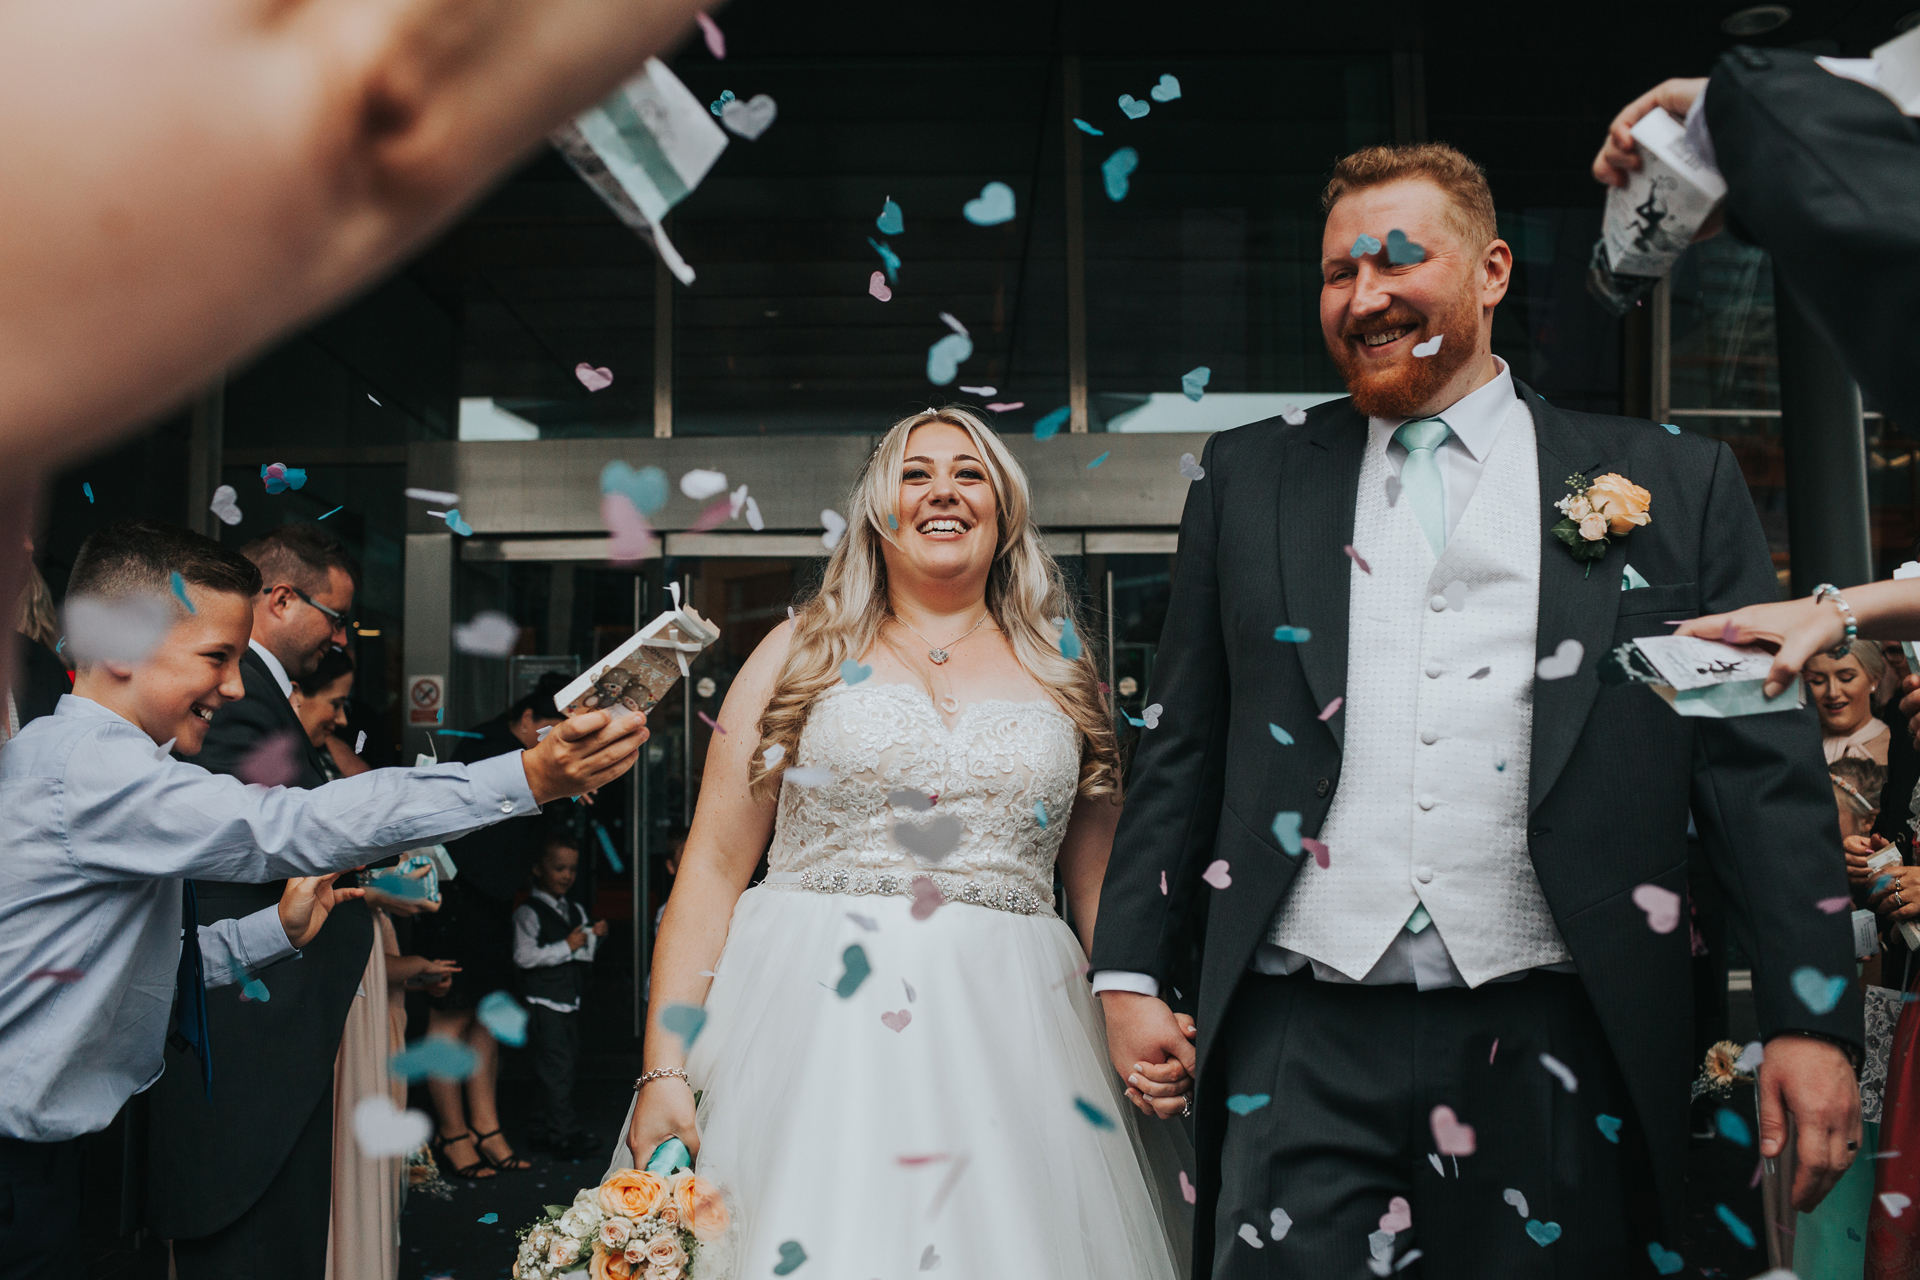 Bride and Groom look happy as they have confetti thrown at them from all angles.